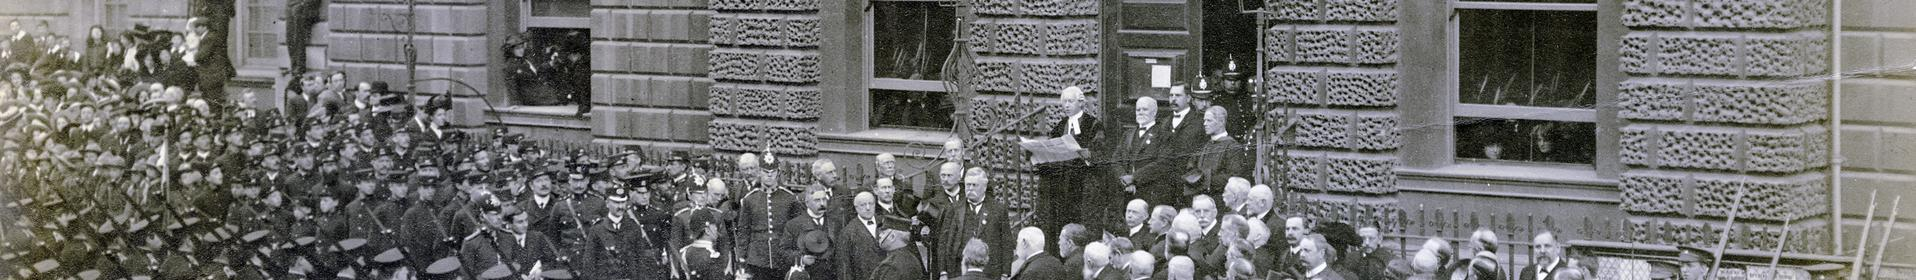 Image: historic photograph outside the Guildhall